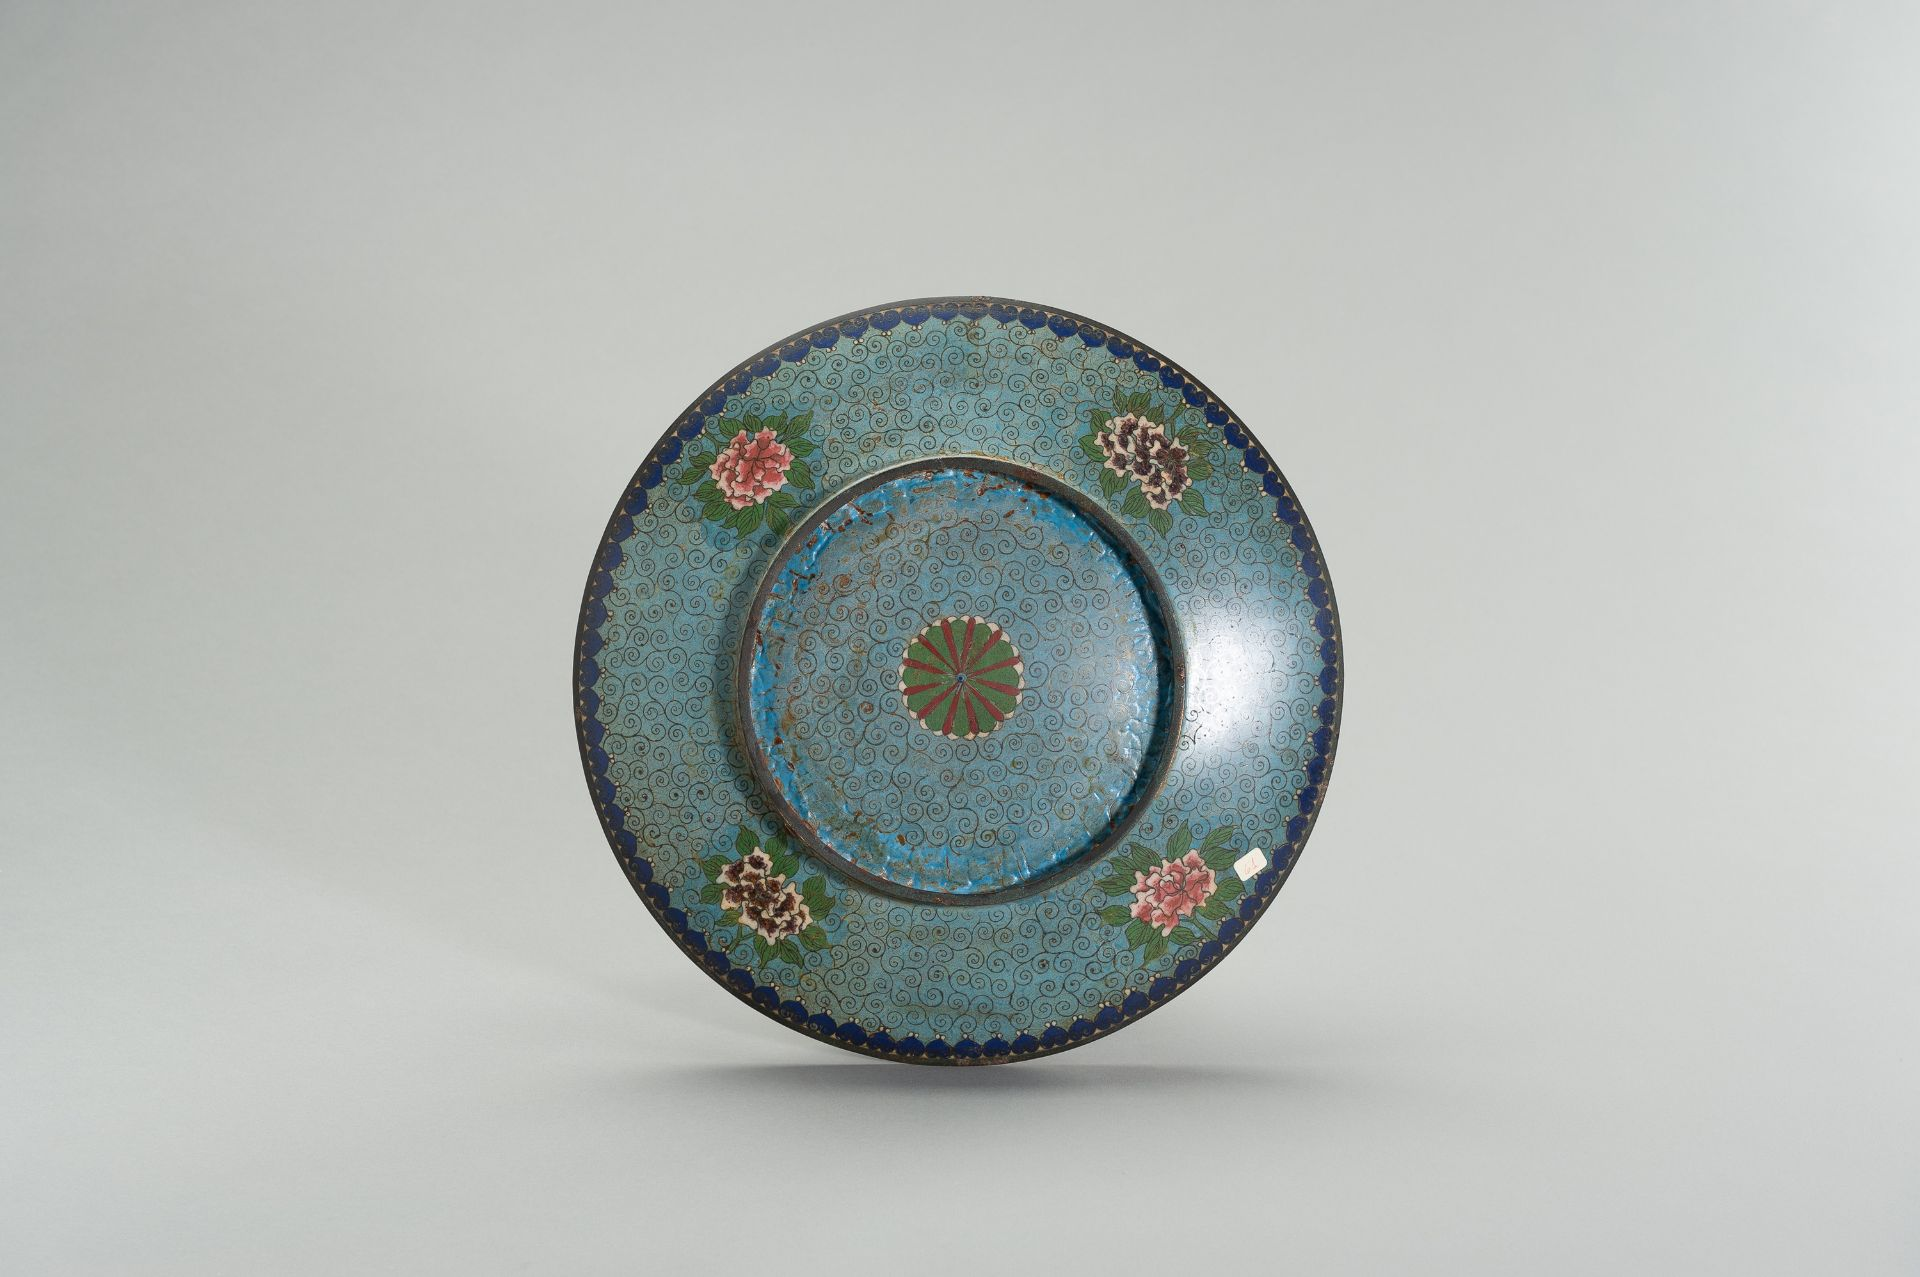 A LARGE CLOISONNE ENAMEL PLATE WITH FIGURAL DECOR - Image 6 of 7